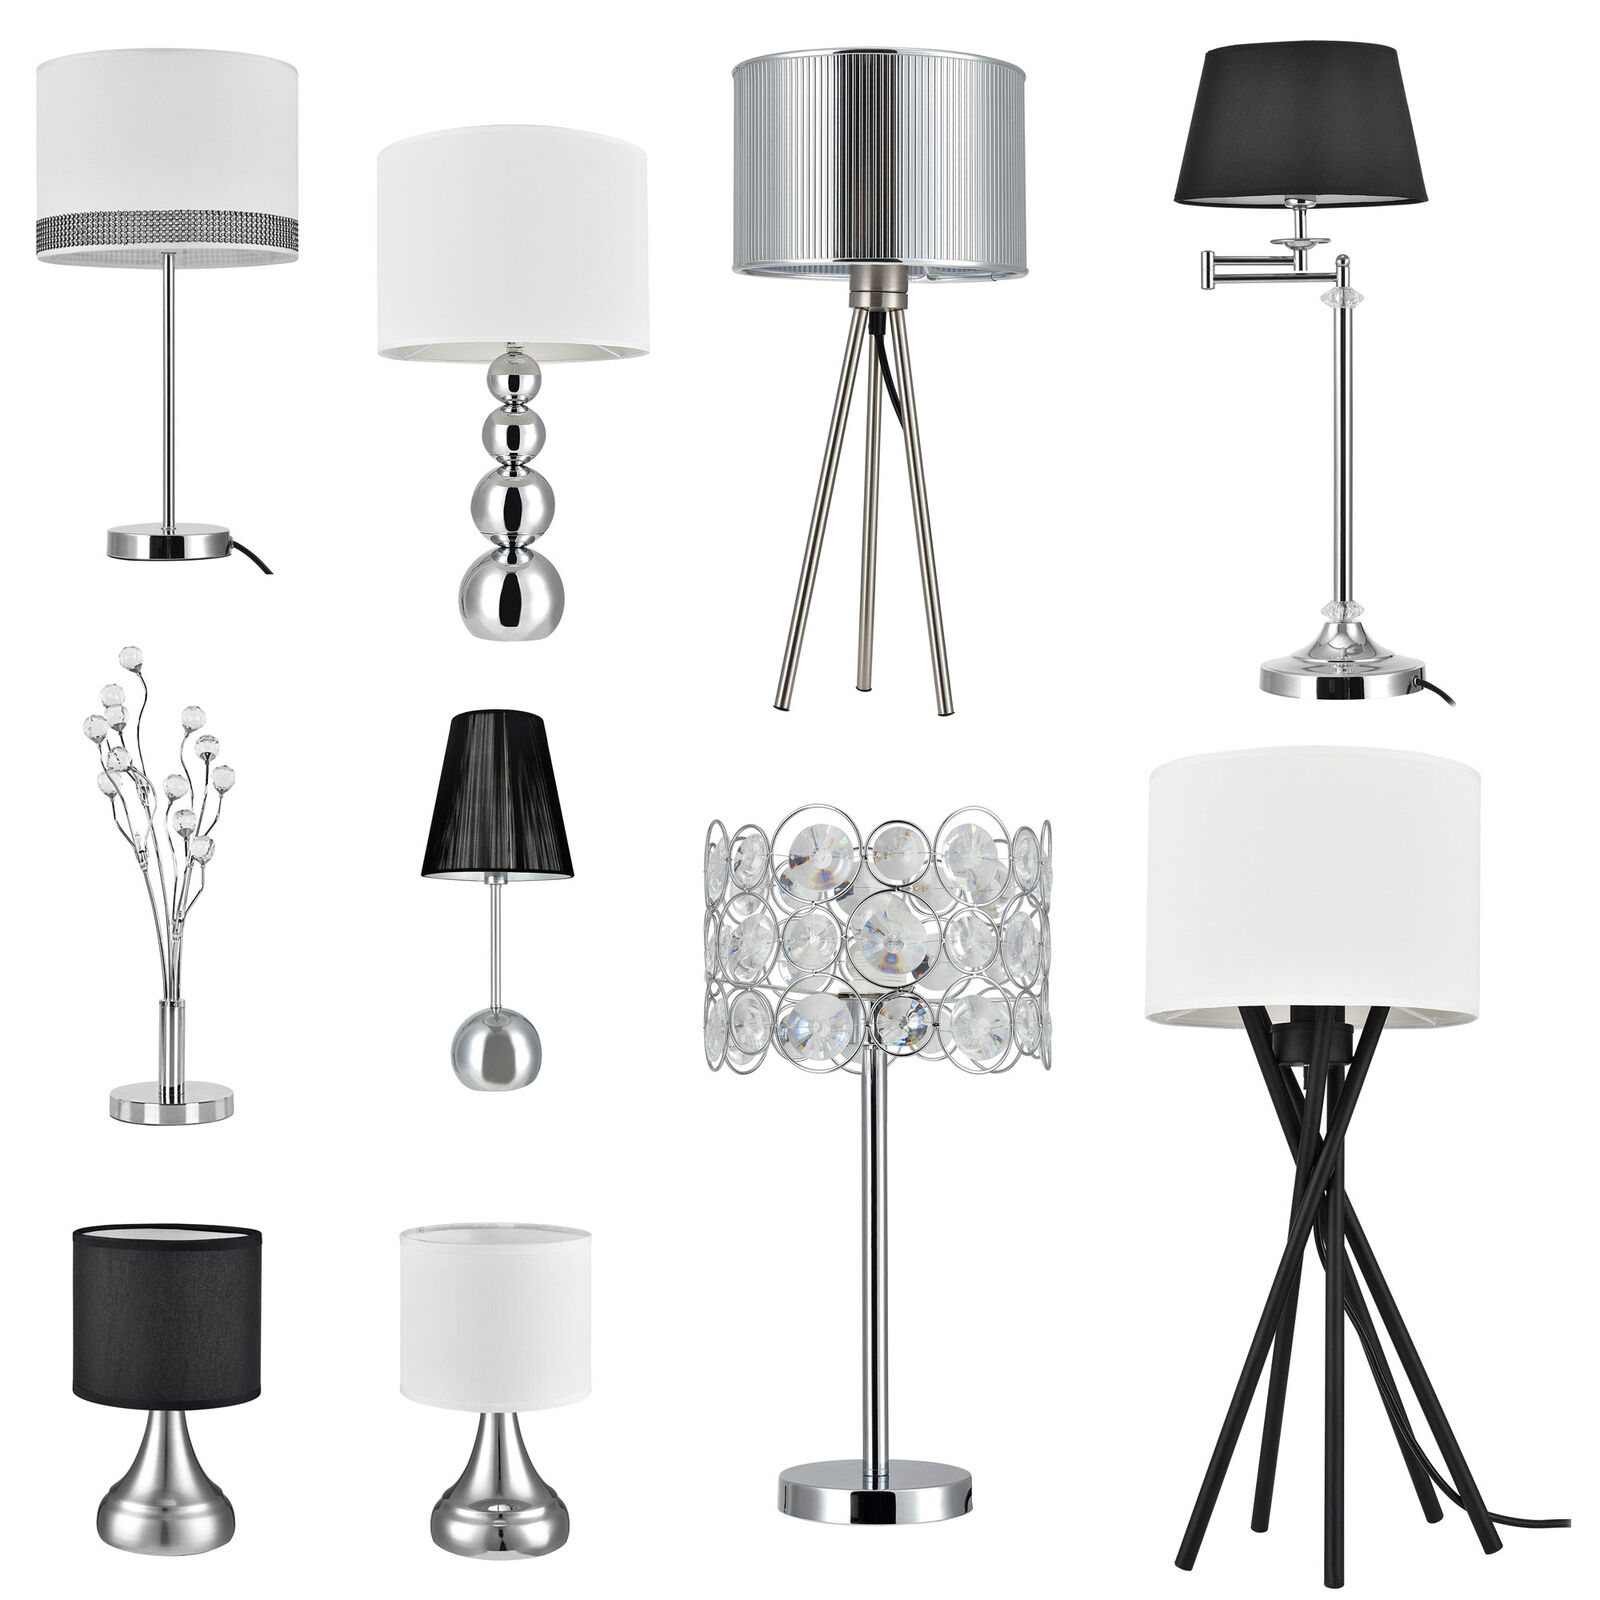 tischleuchte lampe schreibtischlampe schreibtischlampe nachttischlampe eur 12 90. Black Bedroom Furniture Sets. Home Design Ideas